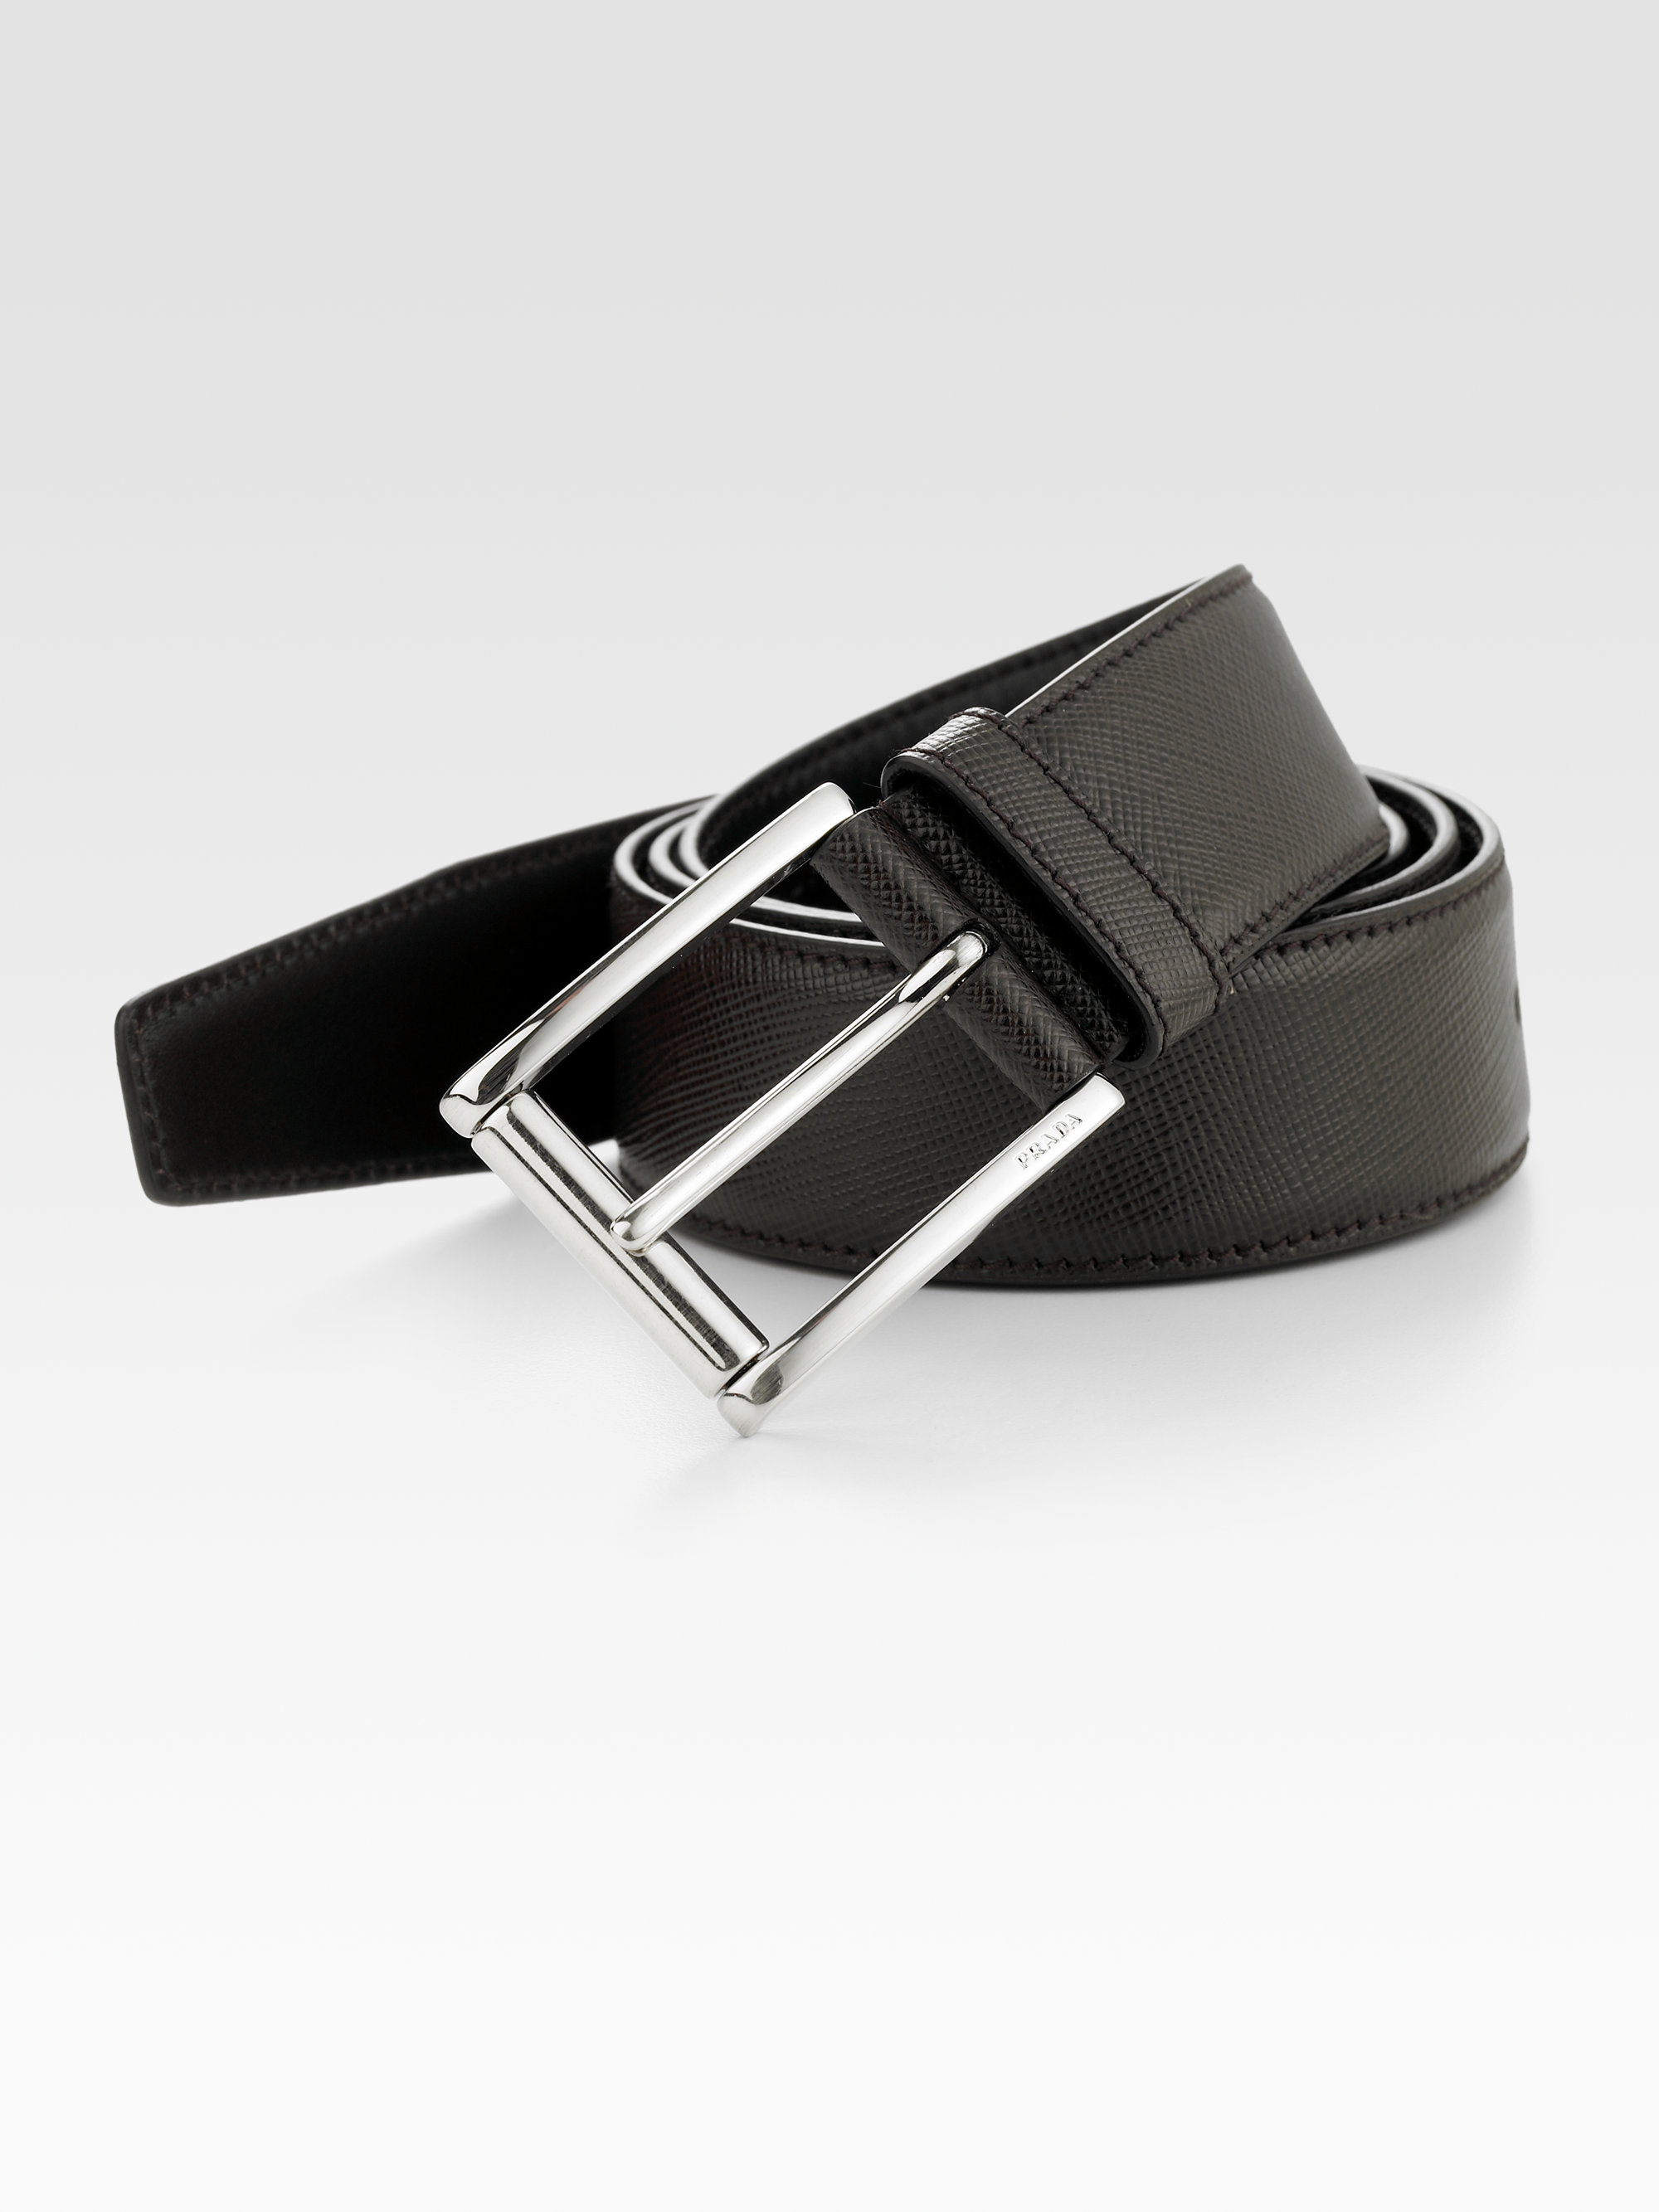 Prada Etched Saffiano Leather Belt In Brown For Men Lyst